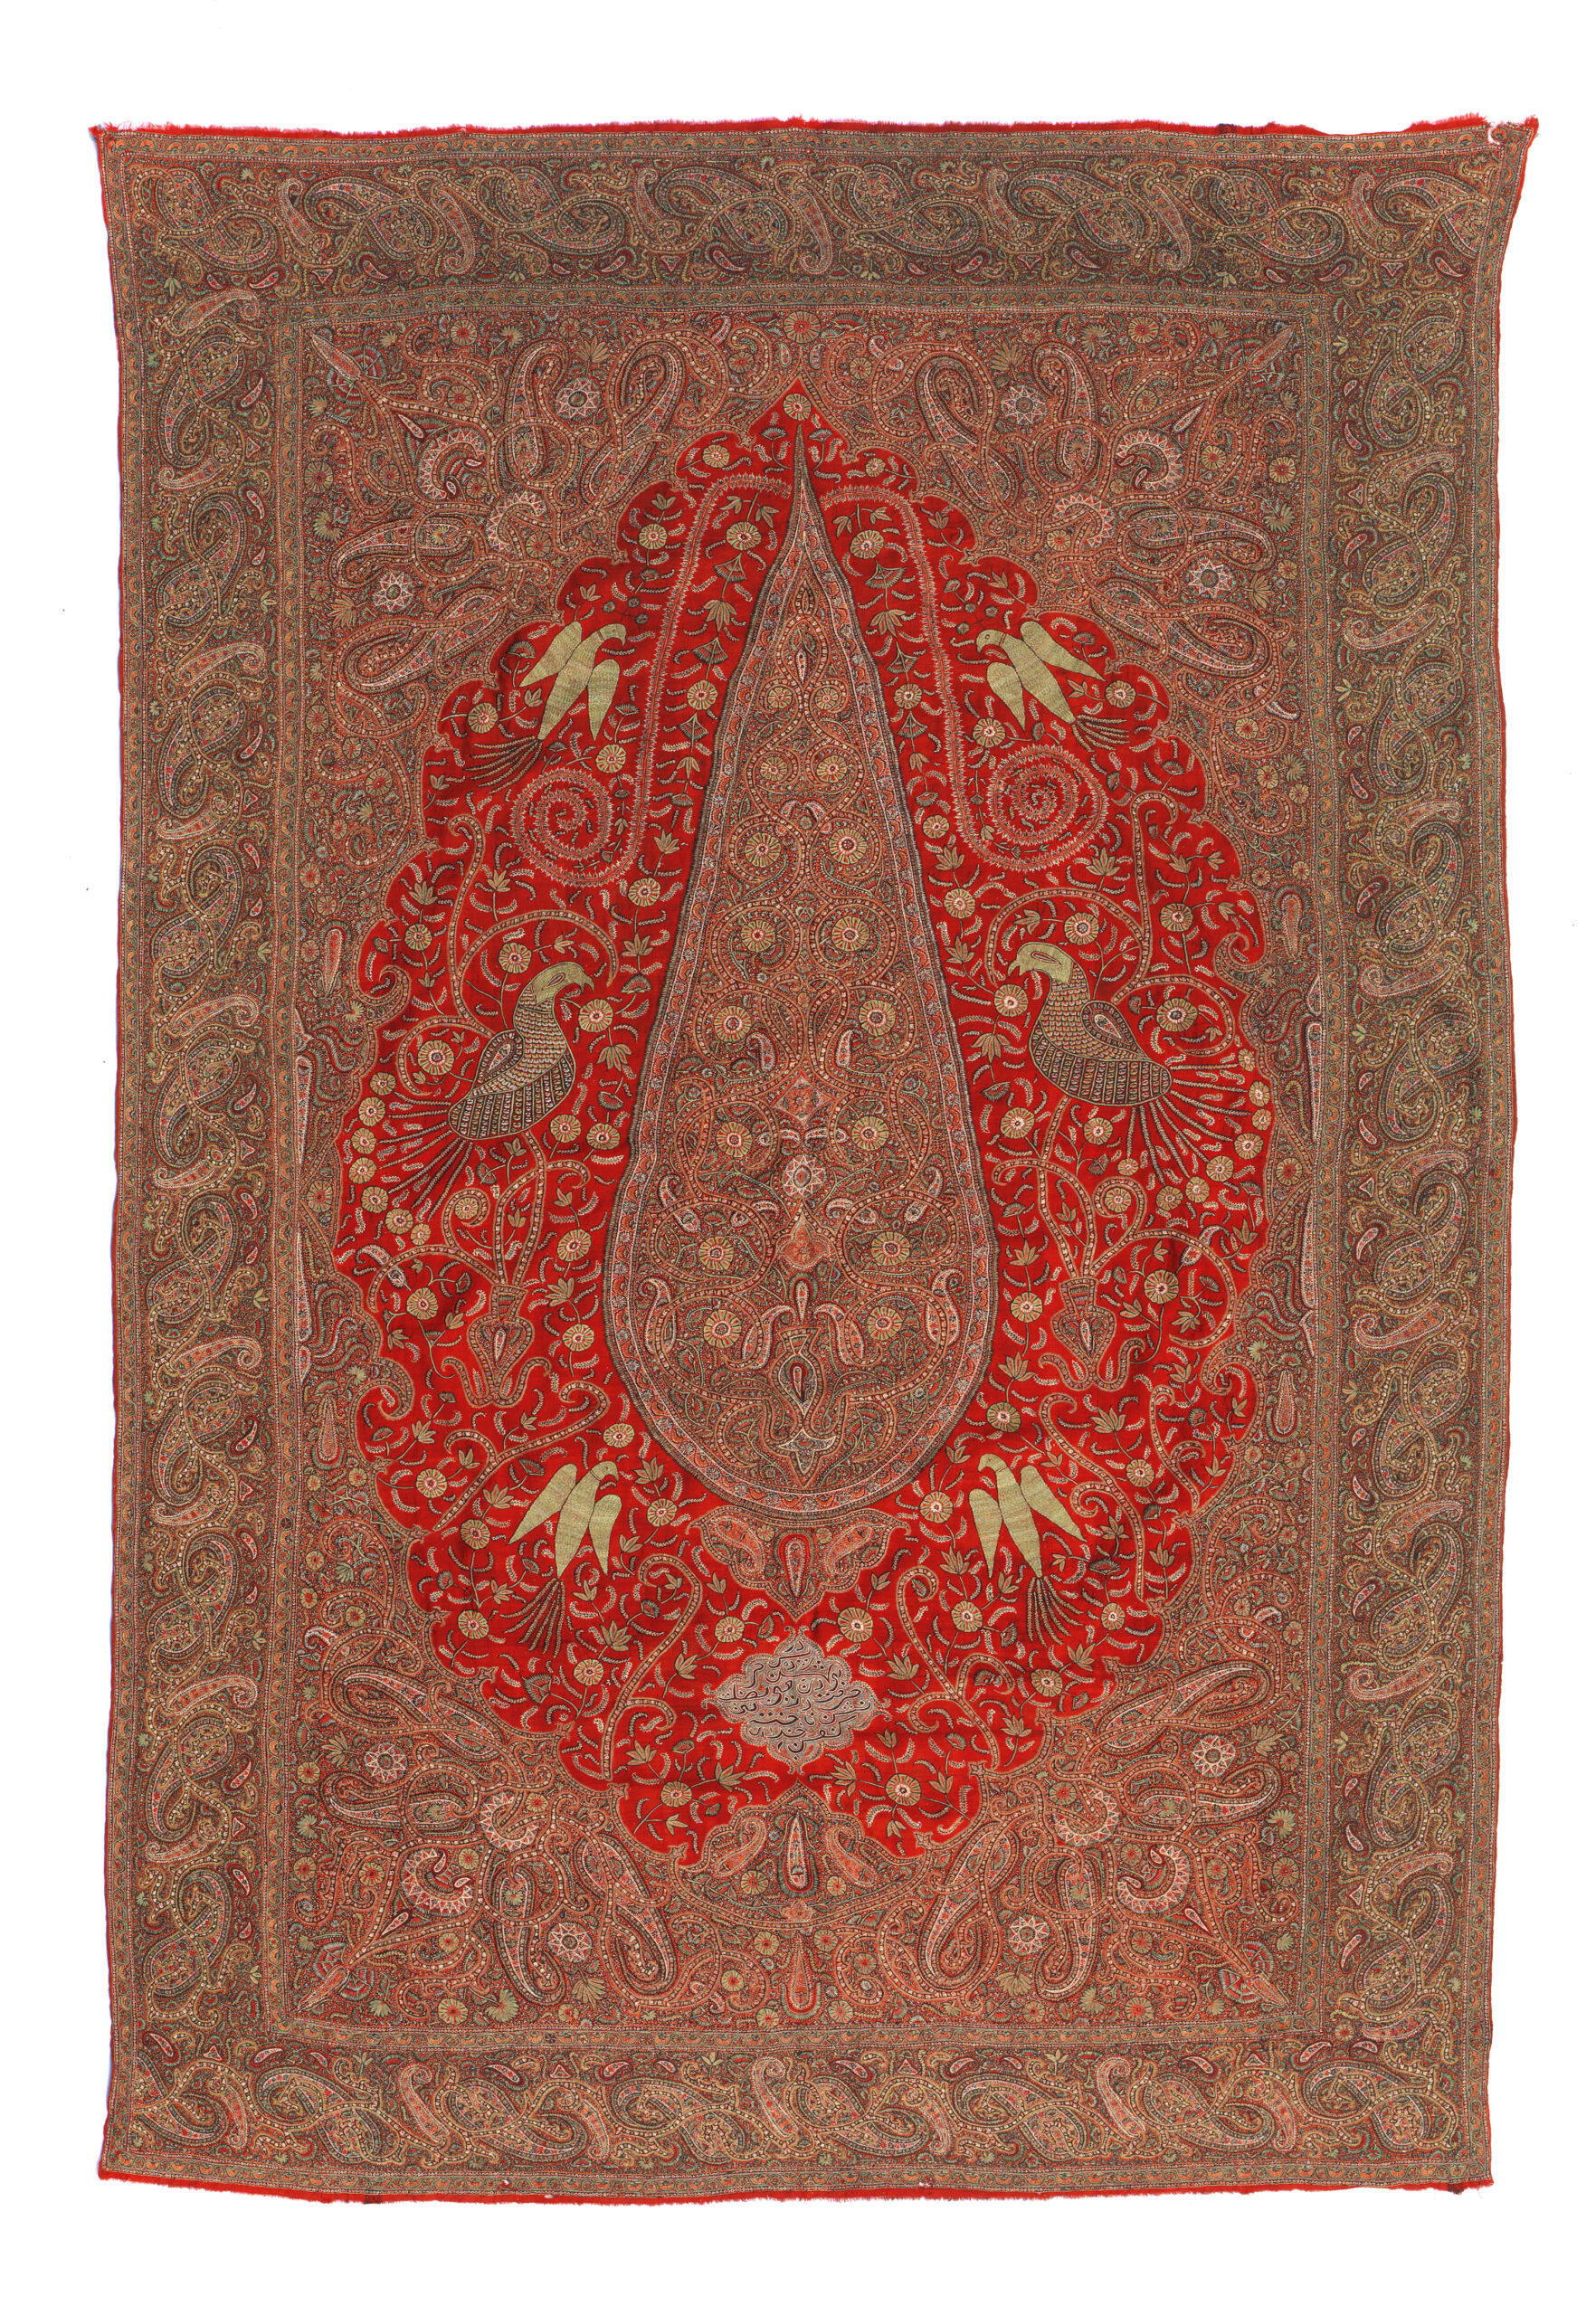 3 Curtain, Kerman, late 19th century. Red wool in twill weave embroidered with coloured silks in pateh-duzi technique with a design of a cypress tree among birds